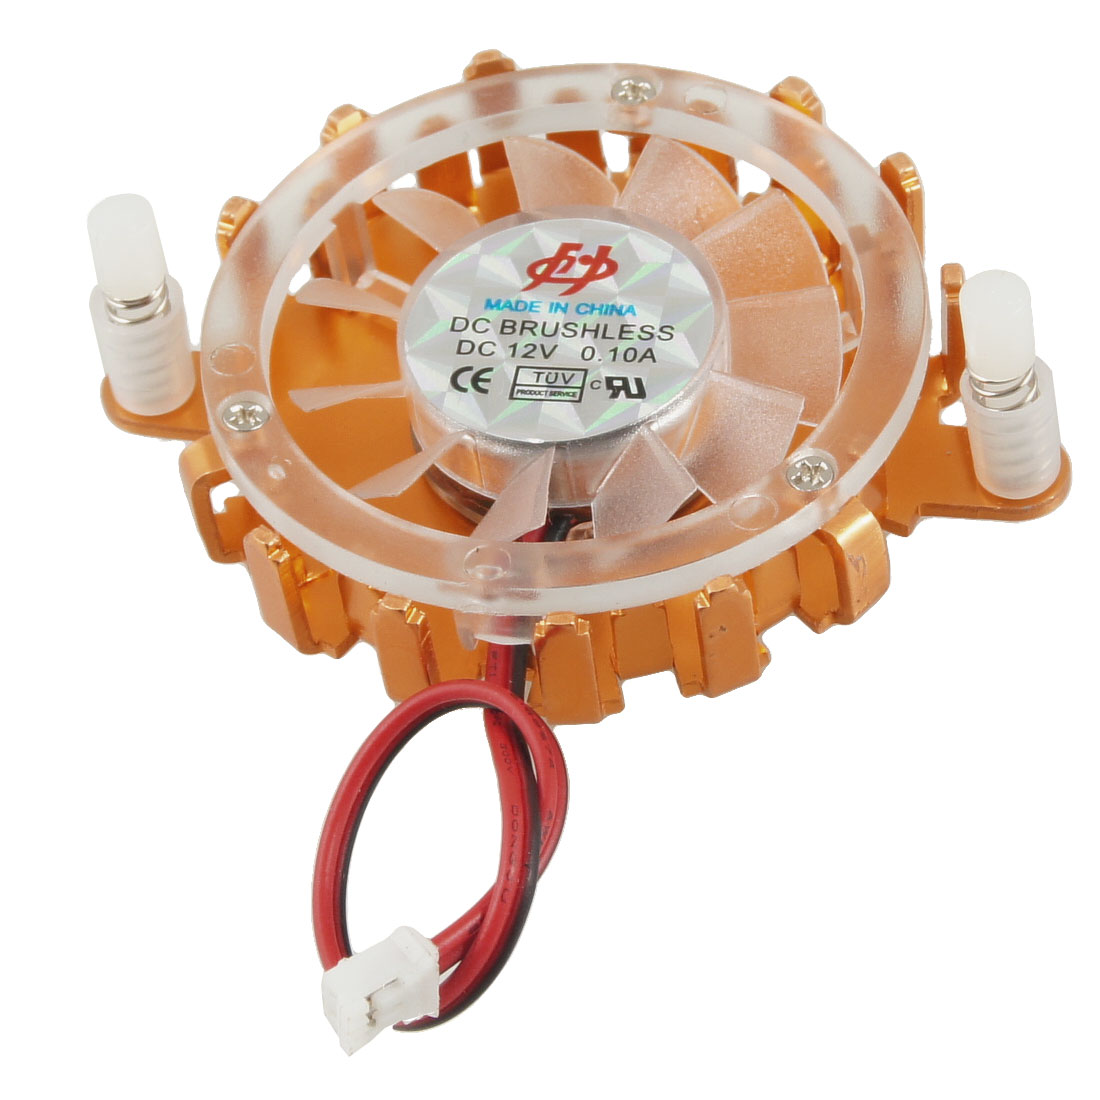 Copper Tone Clear Round Desktop CPU Cooler Cooling Fan